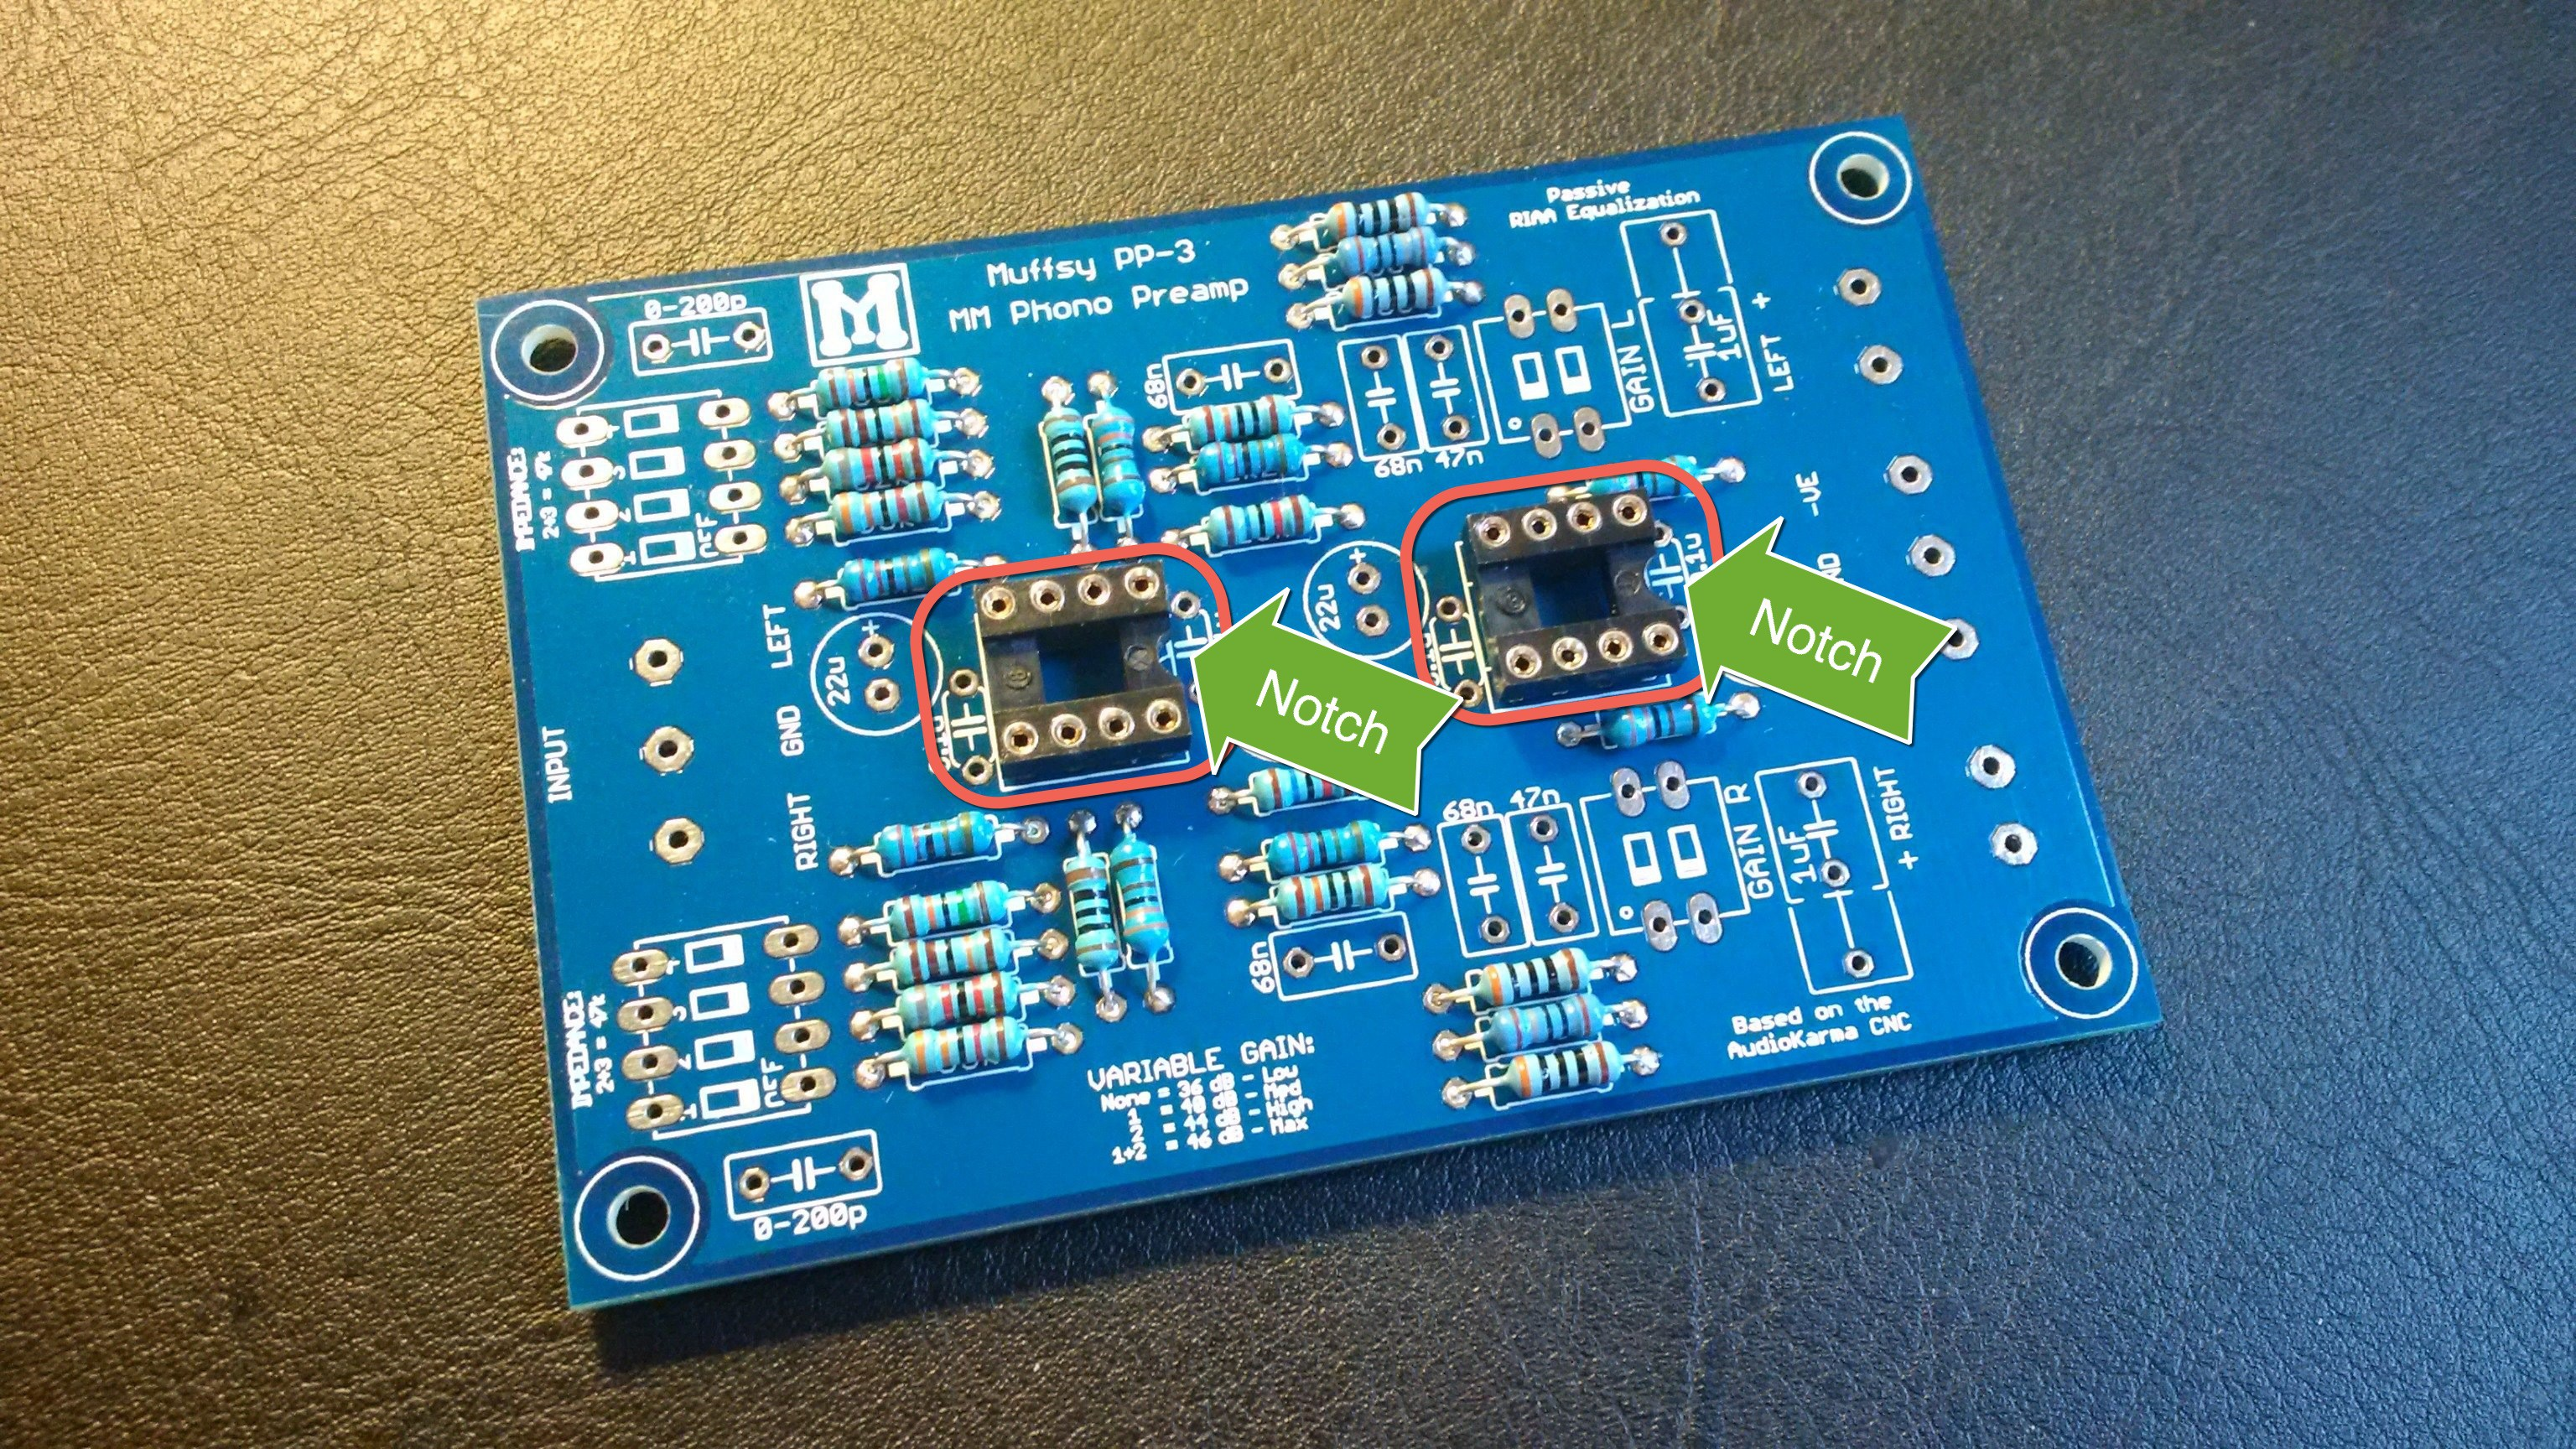 Instructions Muffsy Phono Preamp Pp 3 Diy Pcb How To Create Your Printed Circuit Board O Hackadayio Click On The Pictures For High Resolution Versions